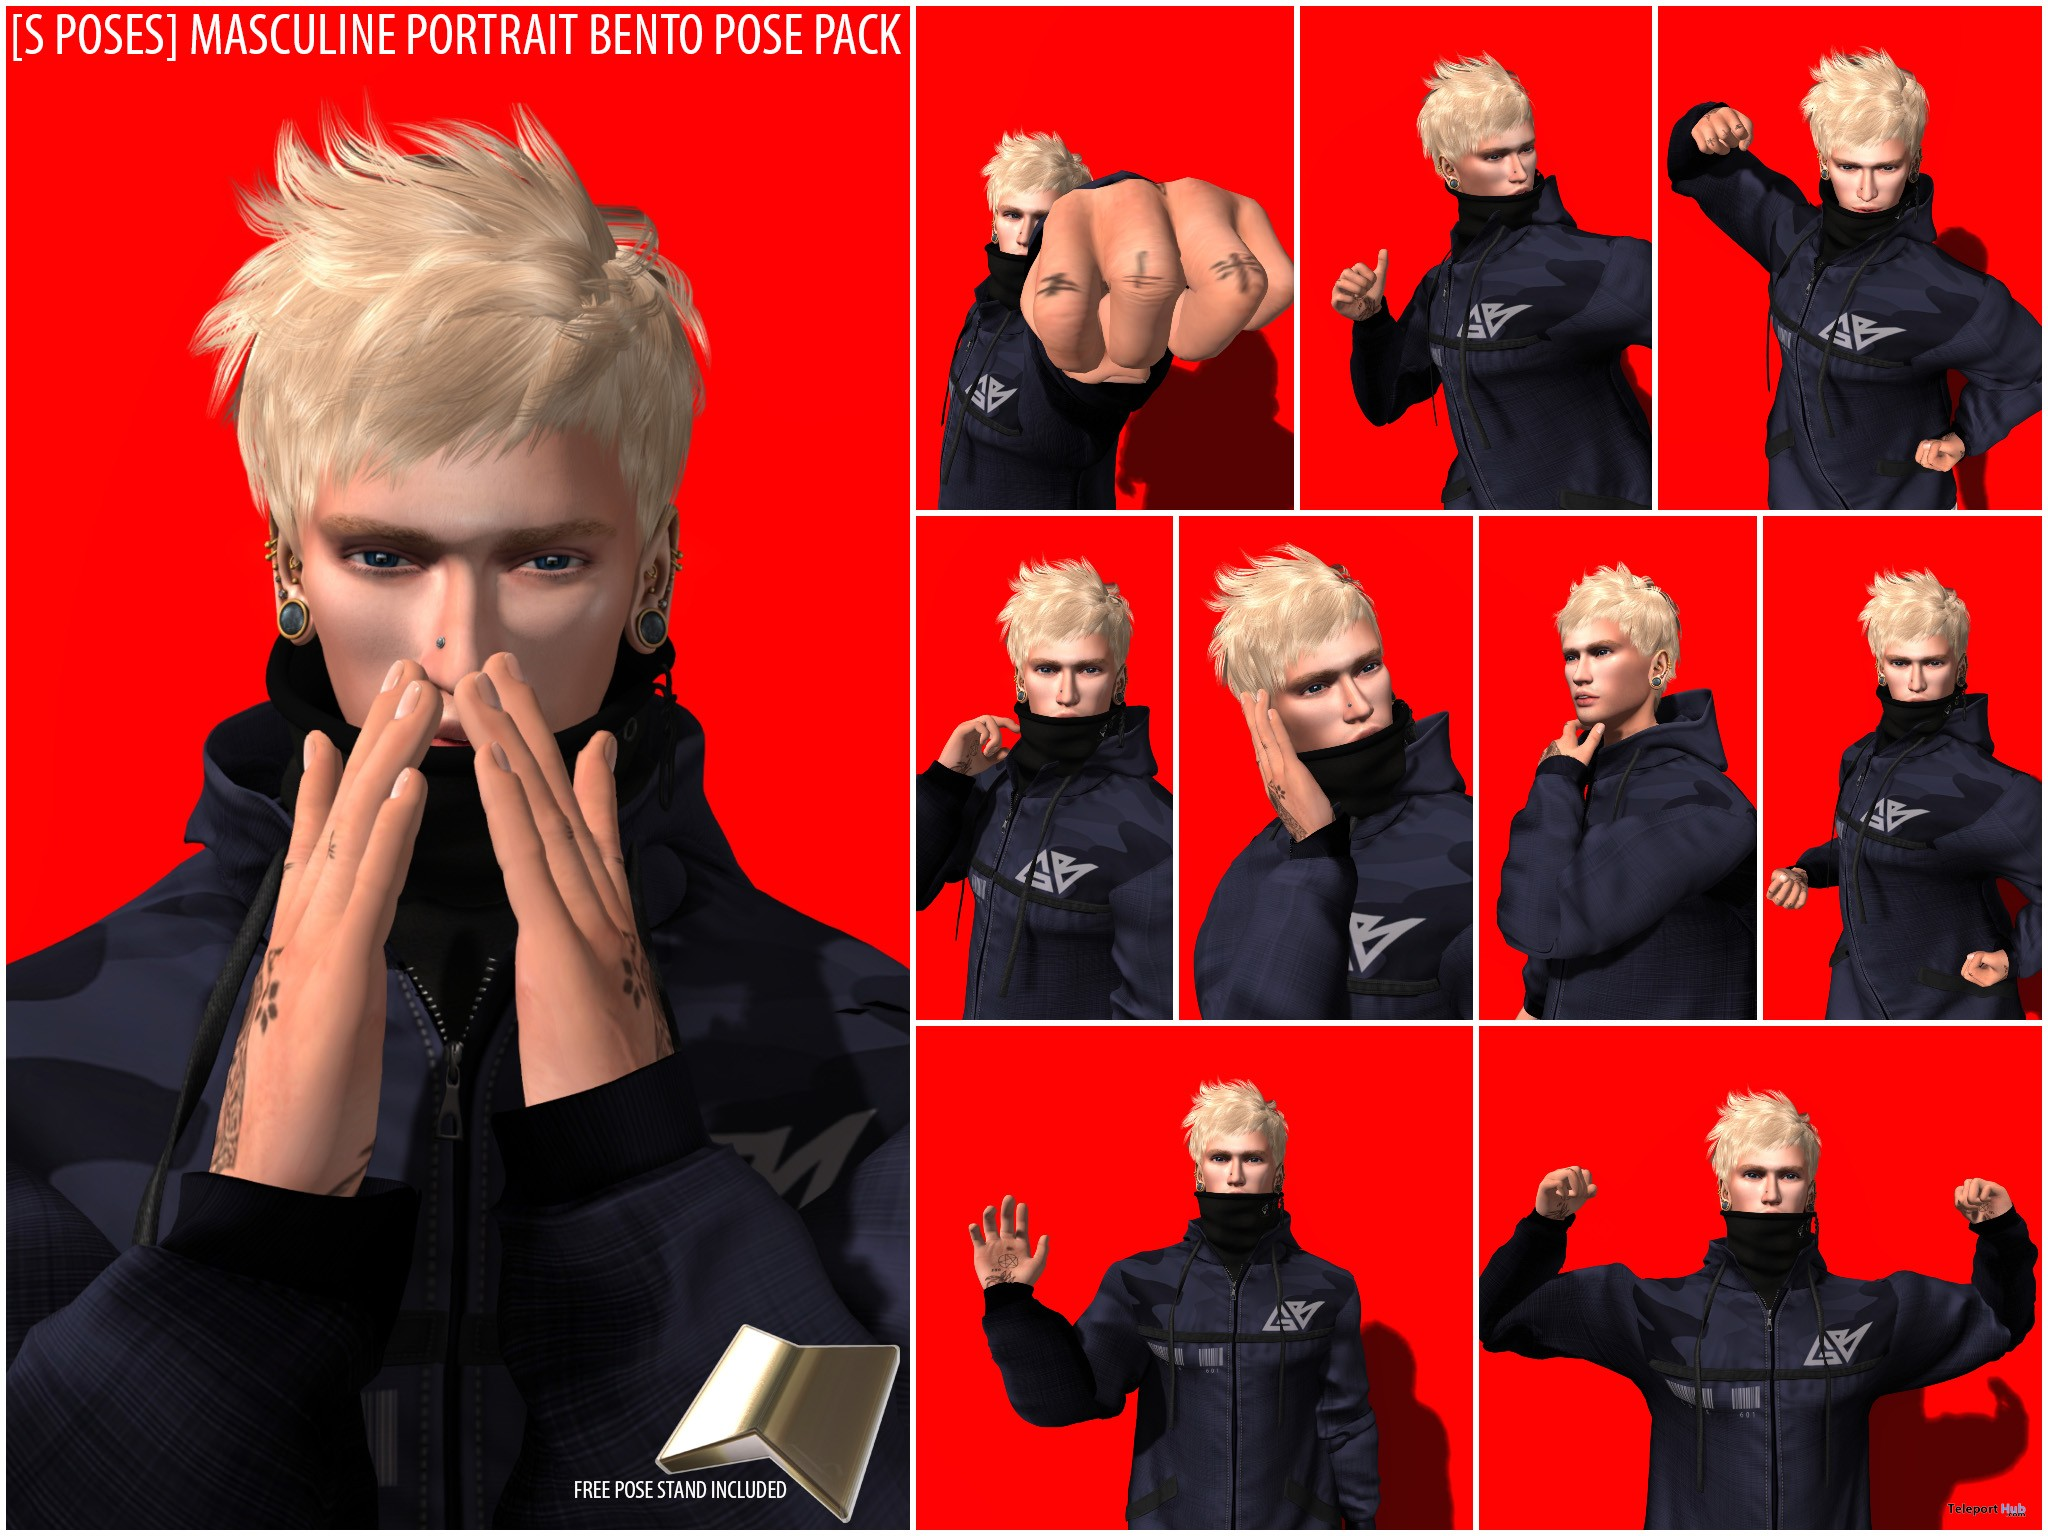 New Release: [S Poses] Masculine Portrait Bento Pose Pack by [satus Inc] - Teleport Hub - teleporthub.com